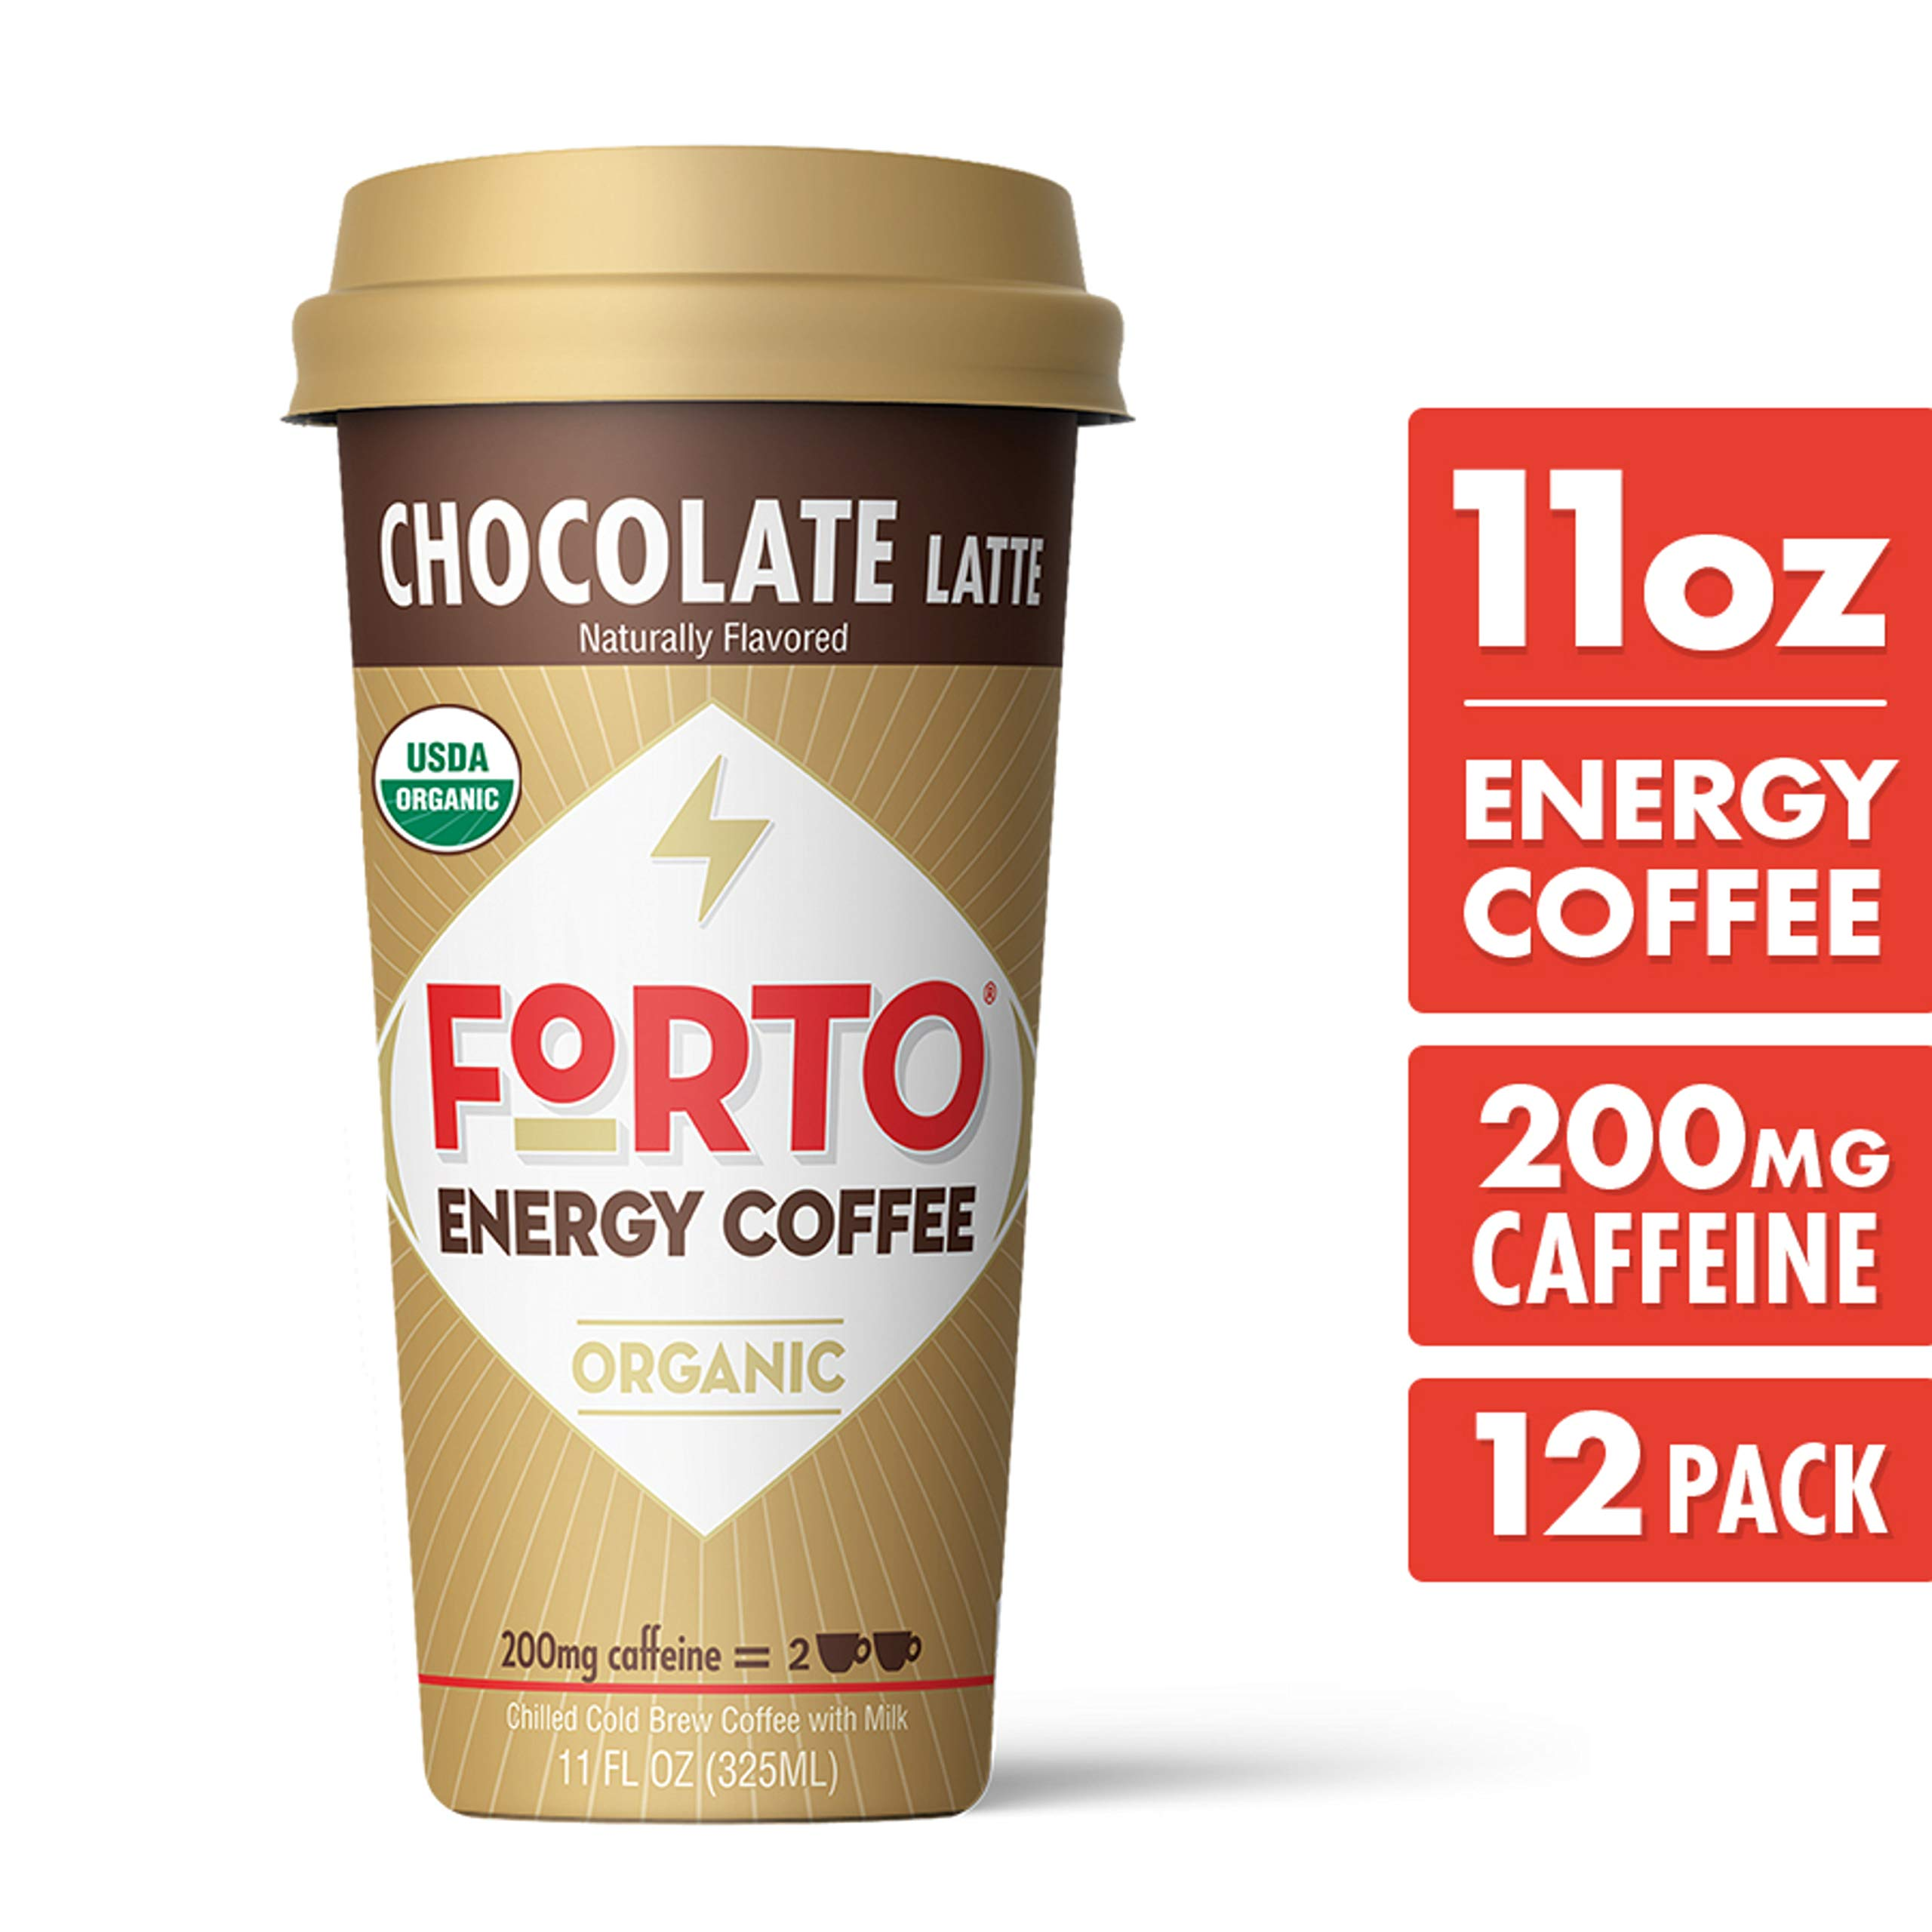 FORTO Energy Coffee - 200mg Caffeine, Chocolate Latte, Delicious & Organic Energy, Ready-To-Drink 11 Fl Oz, Pack of 12 by FORTO